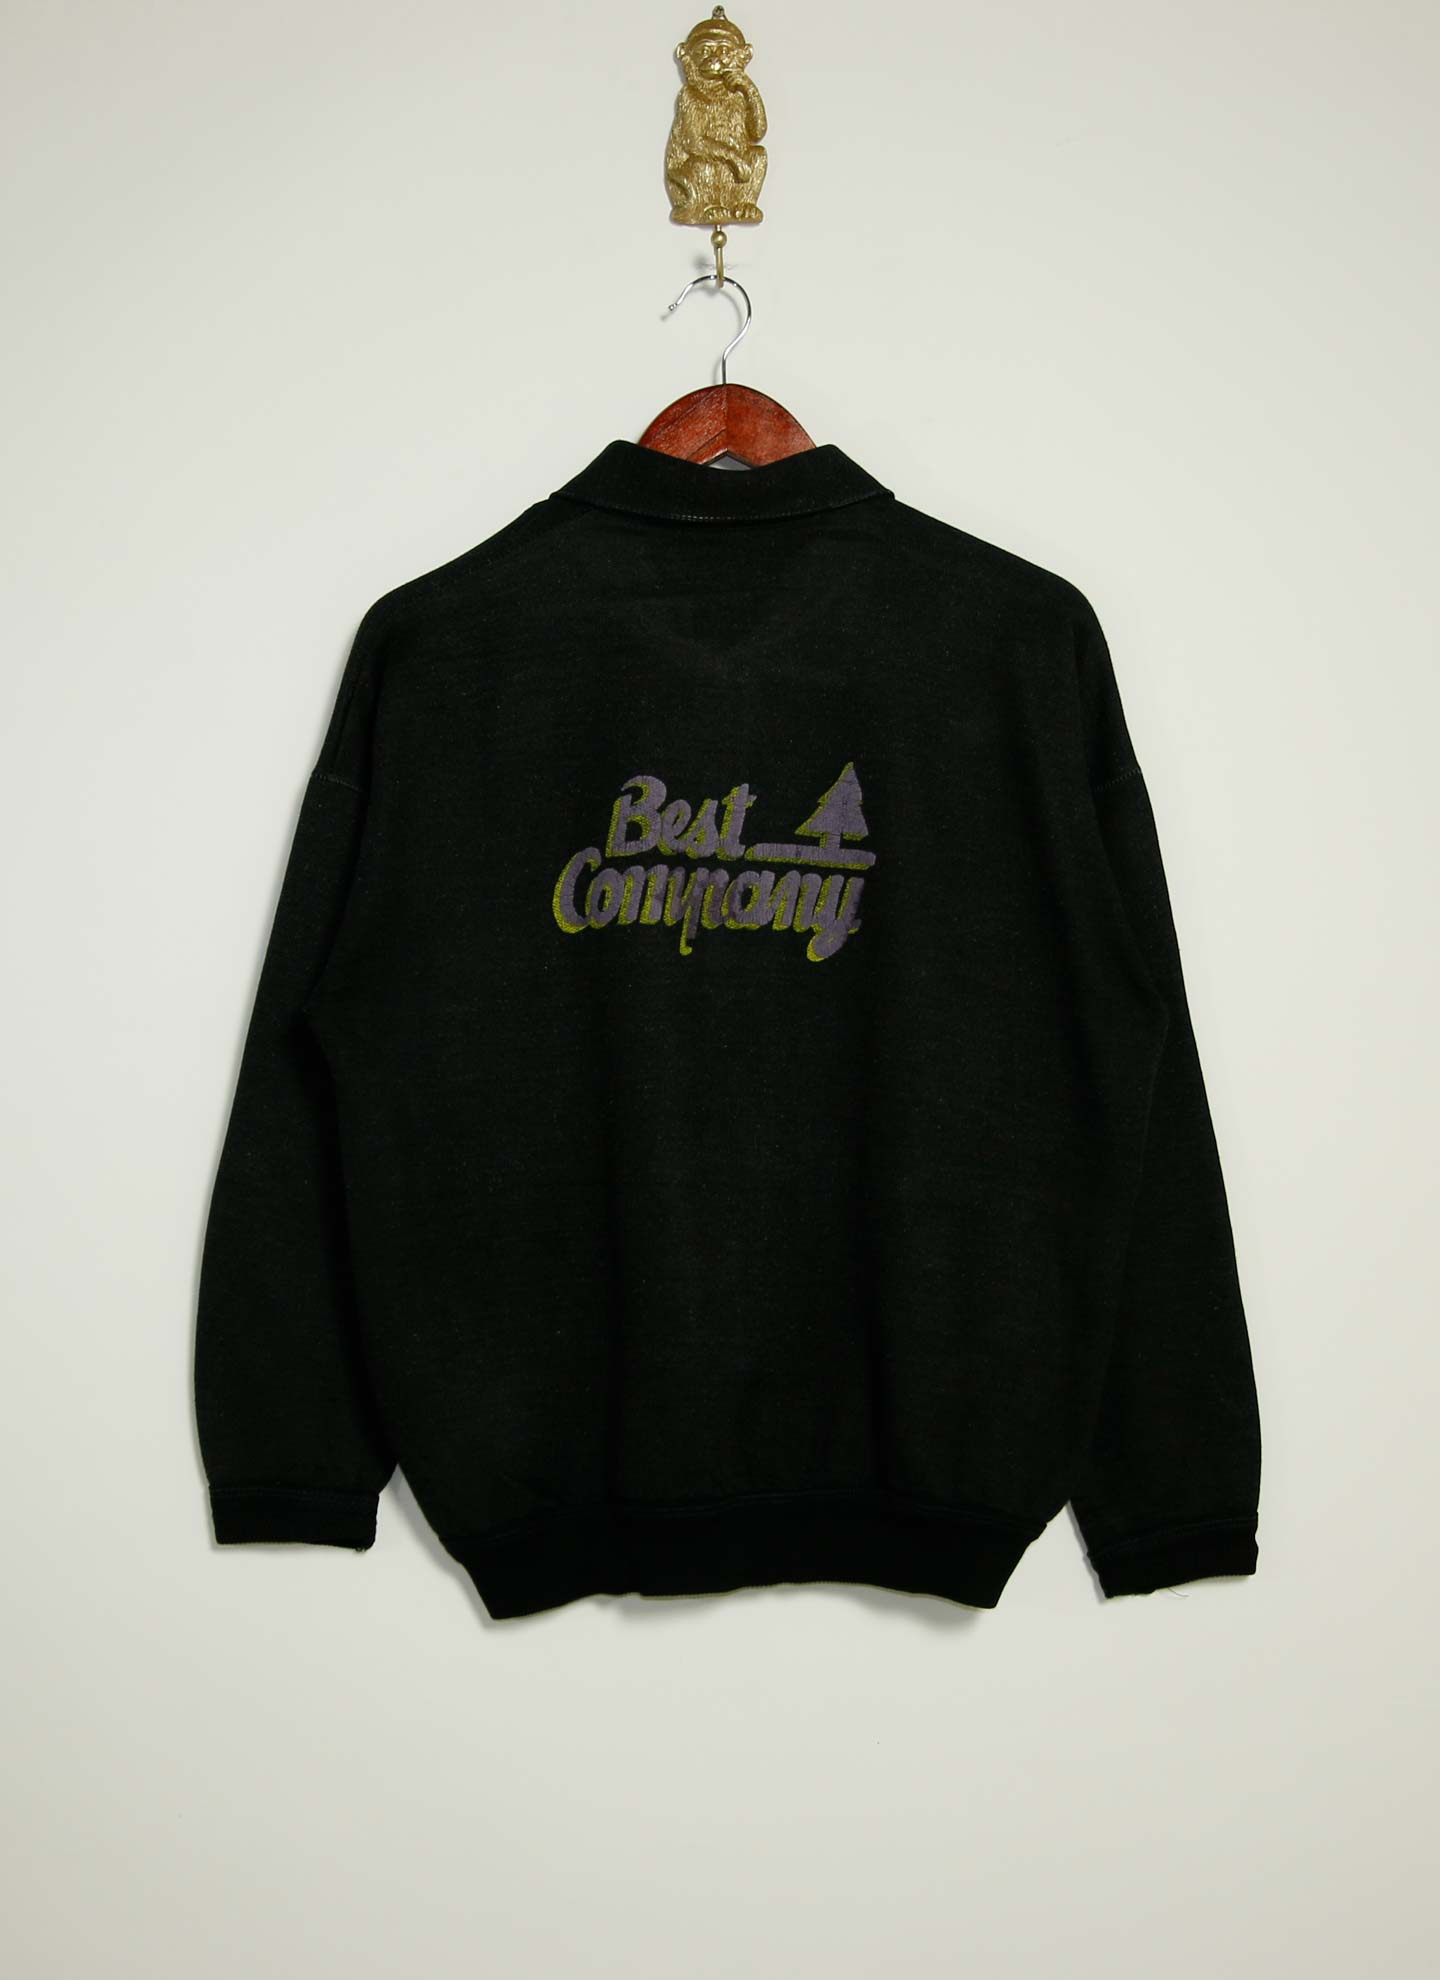 Best Company Sweatshirt